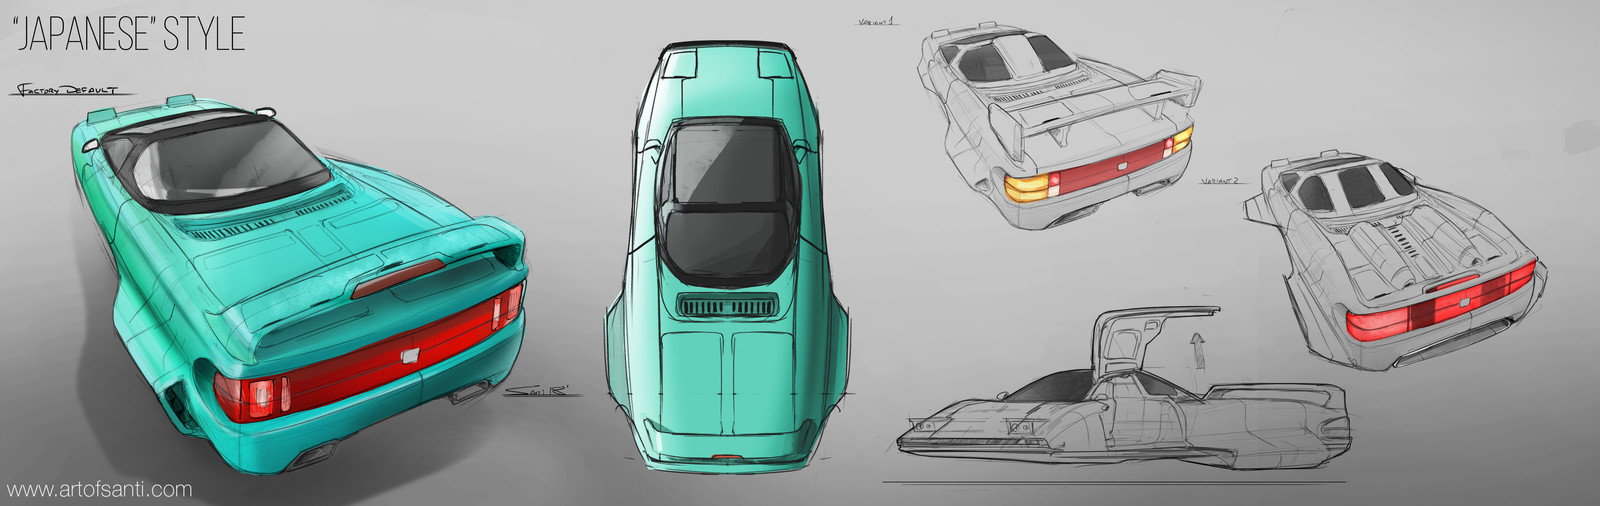 Retro Future Vehicles